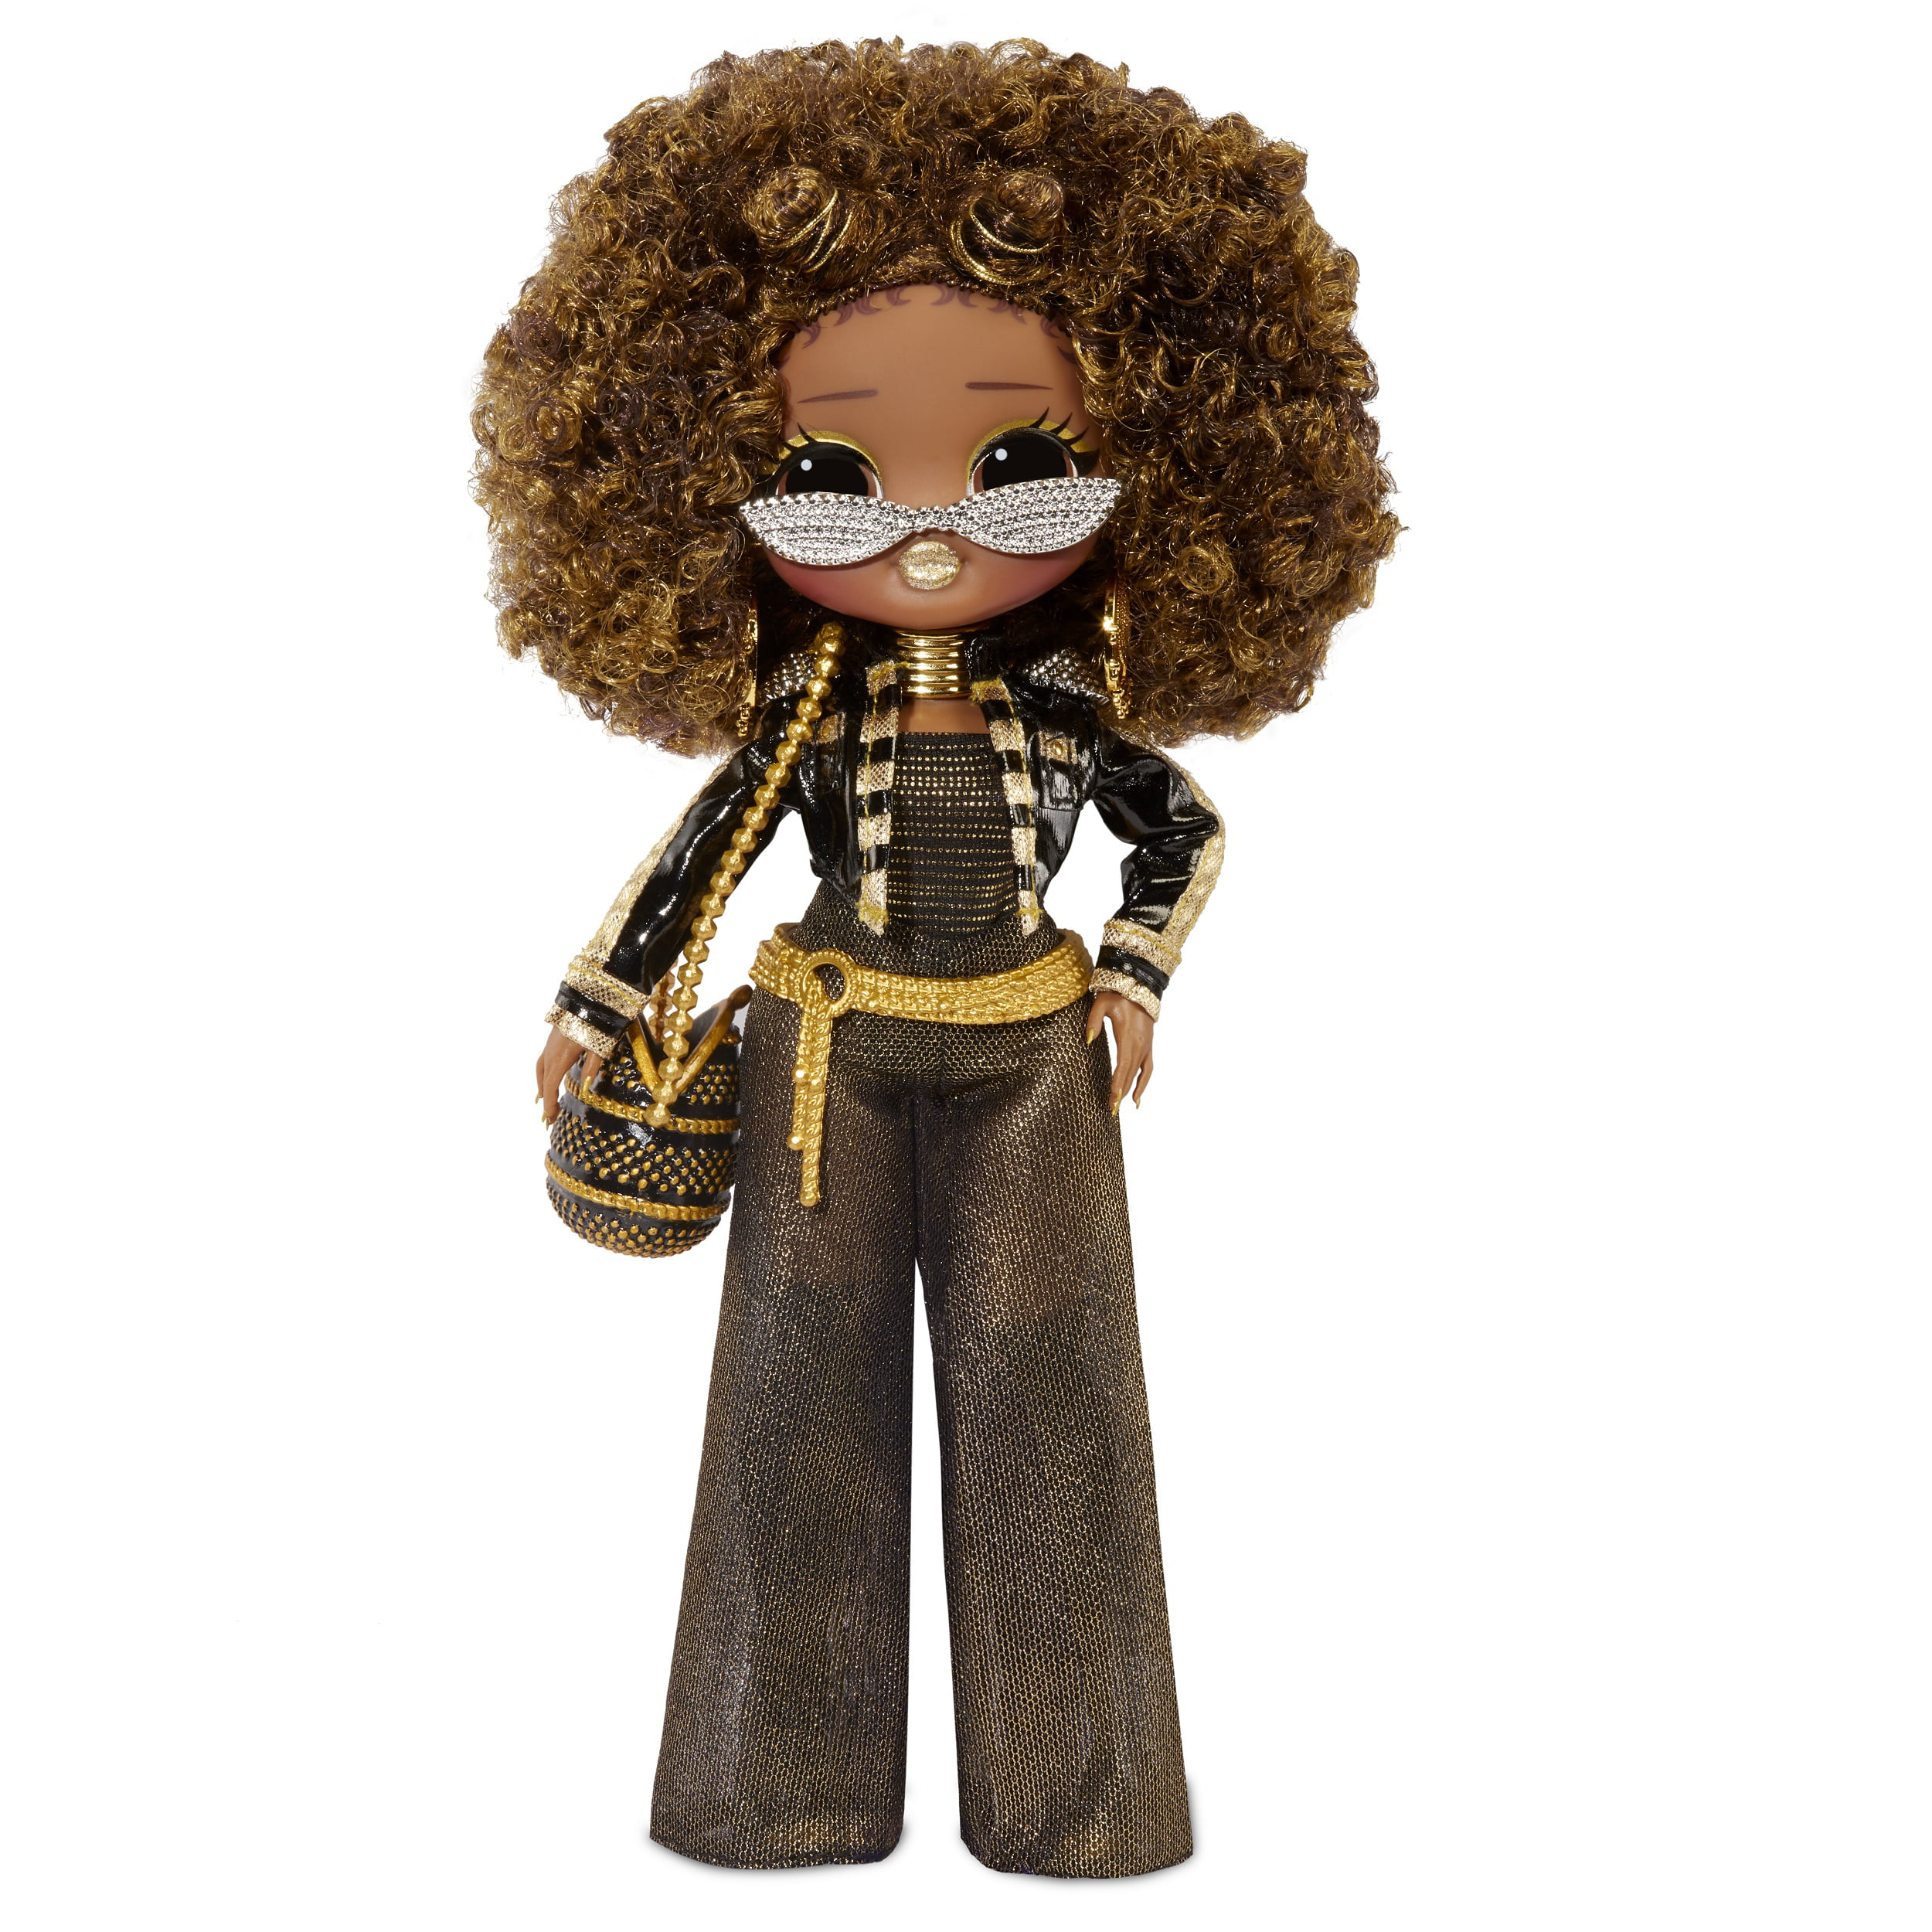 L O L Surprise O M G Royal Bee Fashion Doll With 20 Surprises